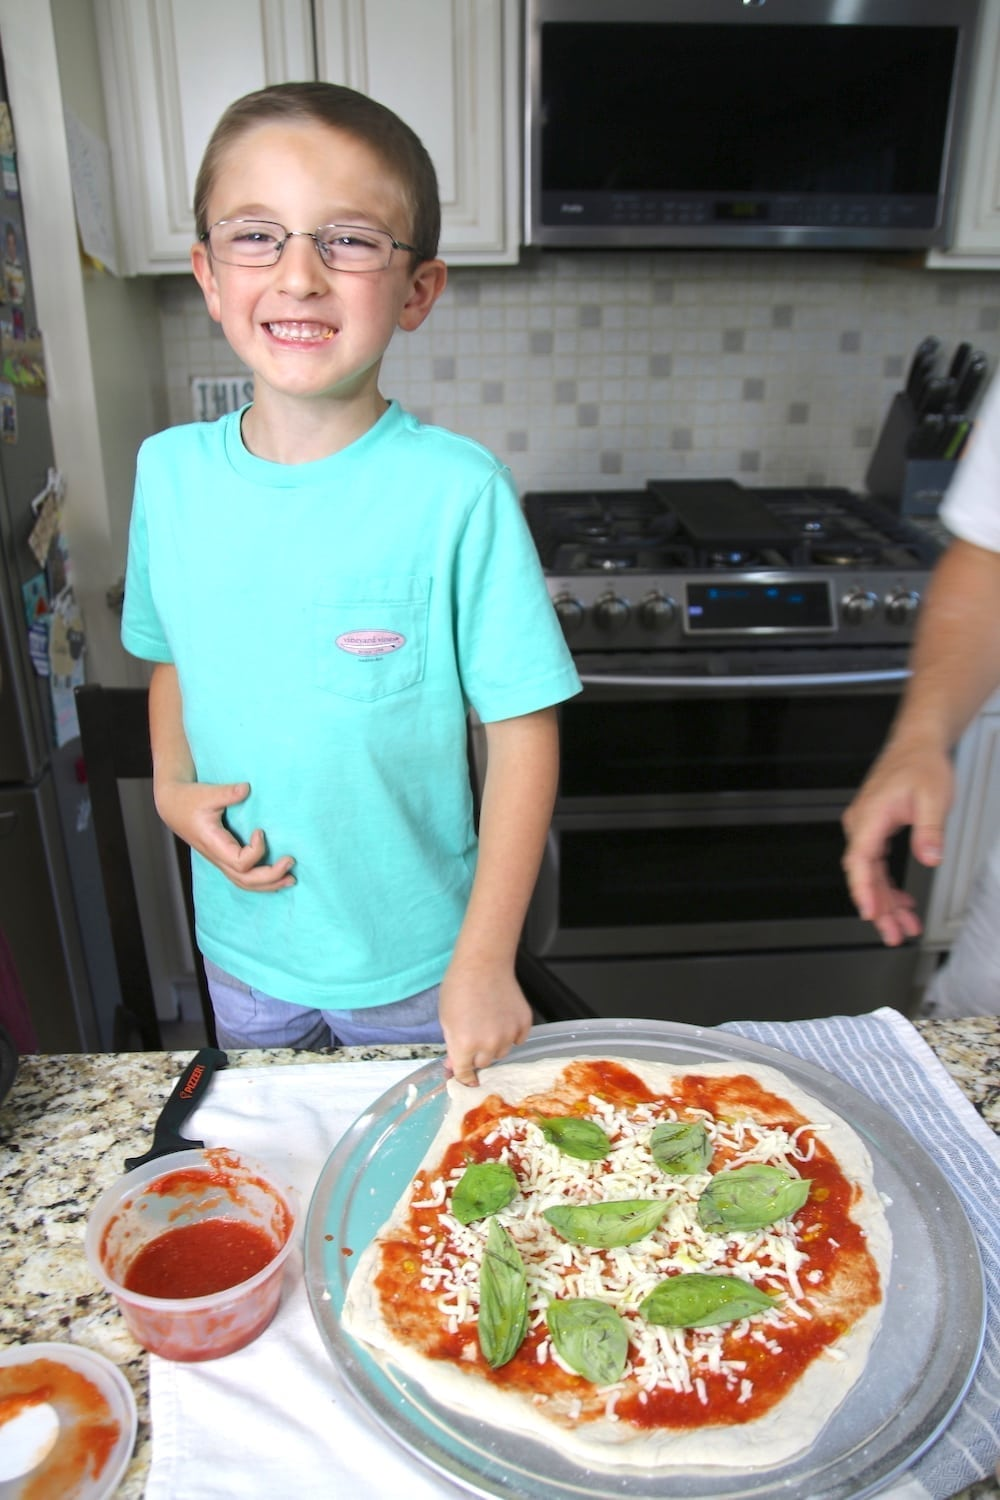 Pizzer Time pizza ready to bake